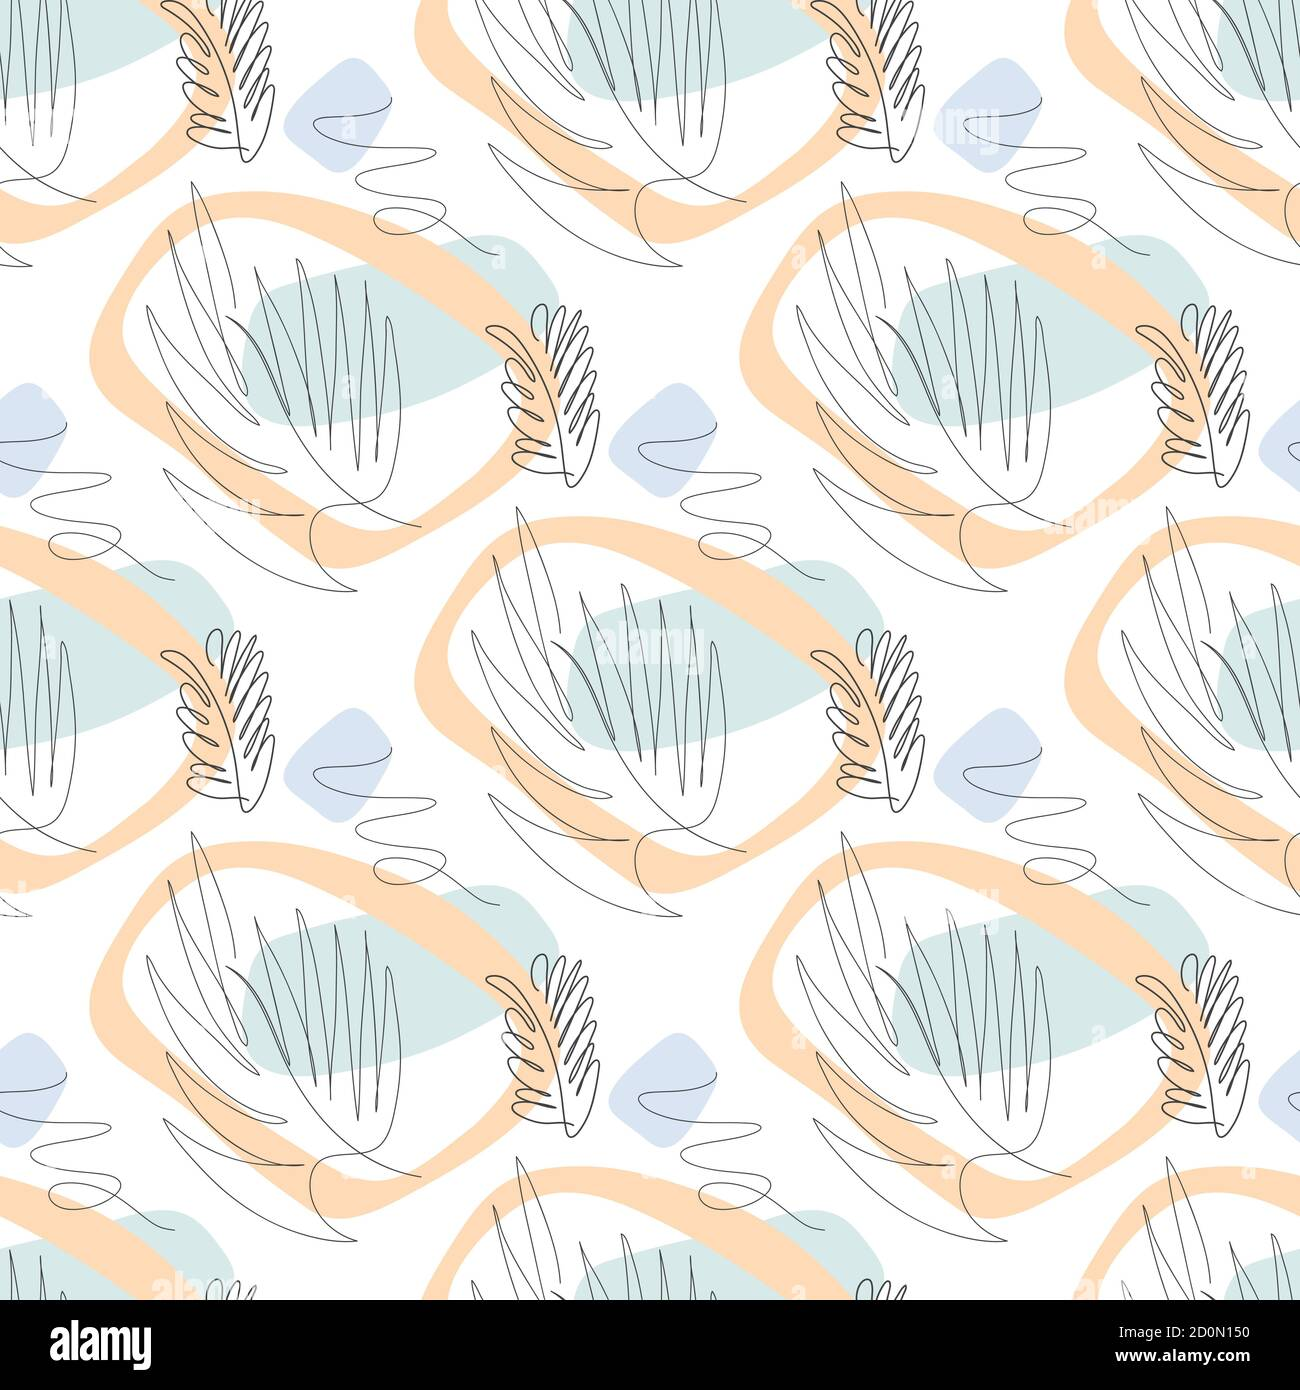 Tropical Leaves Seamless Pattern Hand Drawn Outline Leaf Background Modern Line Art Aesthetic Contour Vector Illustration Black And White Design Stock Vector Image Art Alamy Wallpaper cart offers the latest collection of aesthetic wallpapers and background images. https www alamy com tropical leaves seamless pattern hand drawn outline leaf background modern line art aesthetic contour vector illustration black and white design image379090012 html